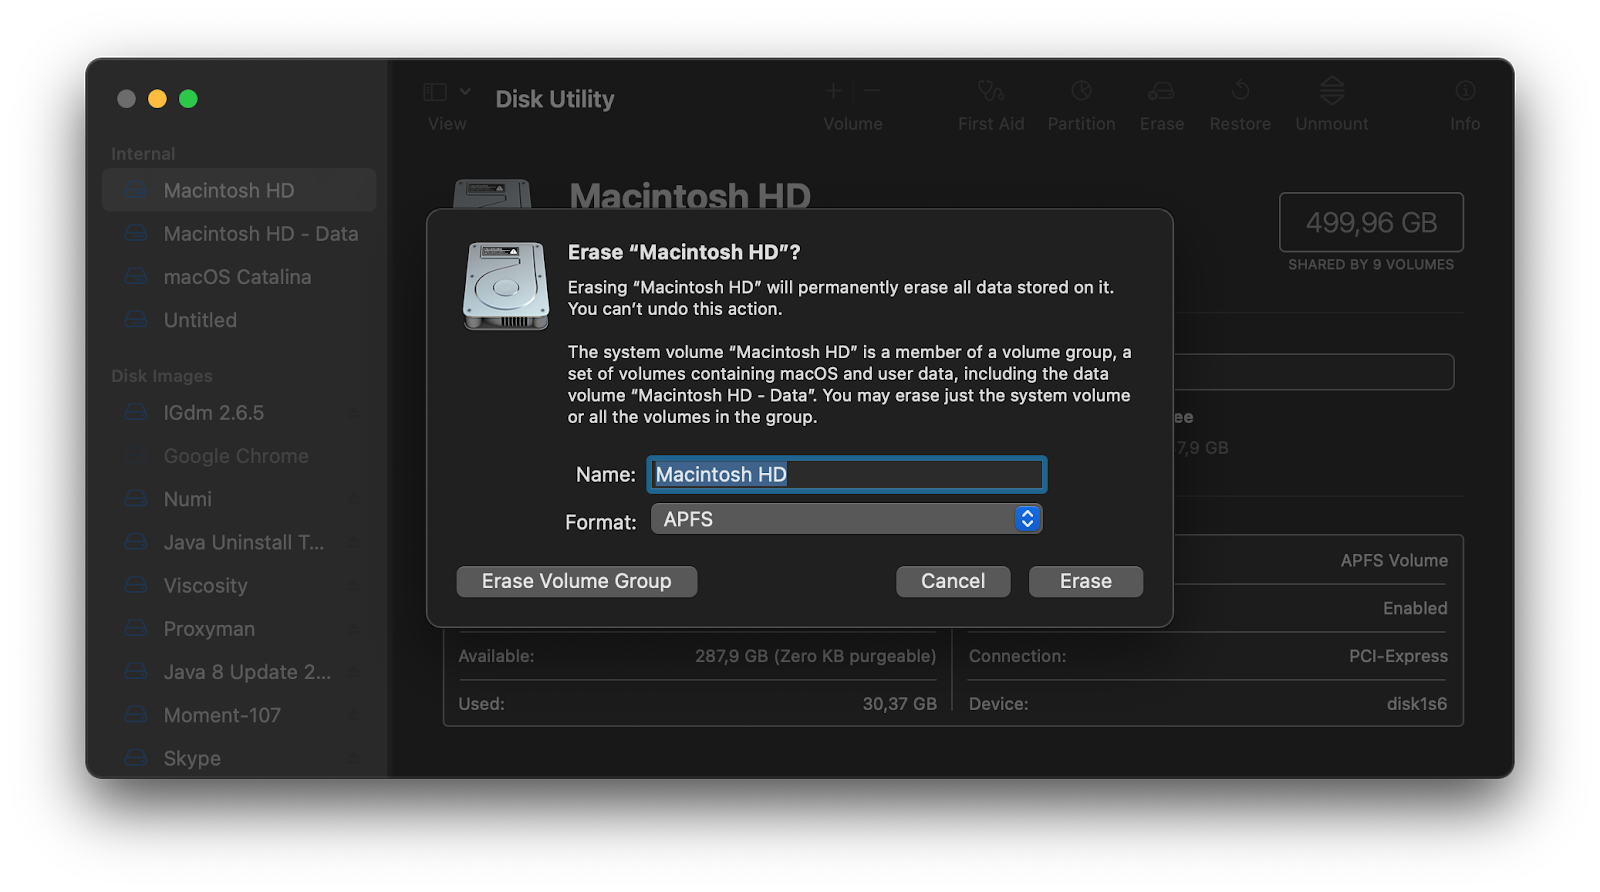 erase your startup drive with Disk Utility